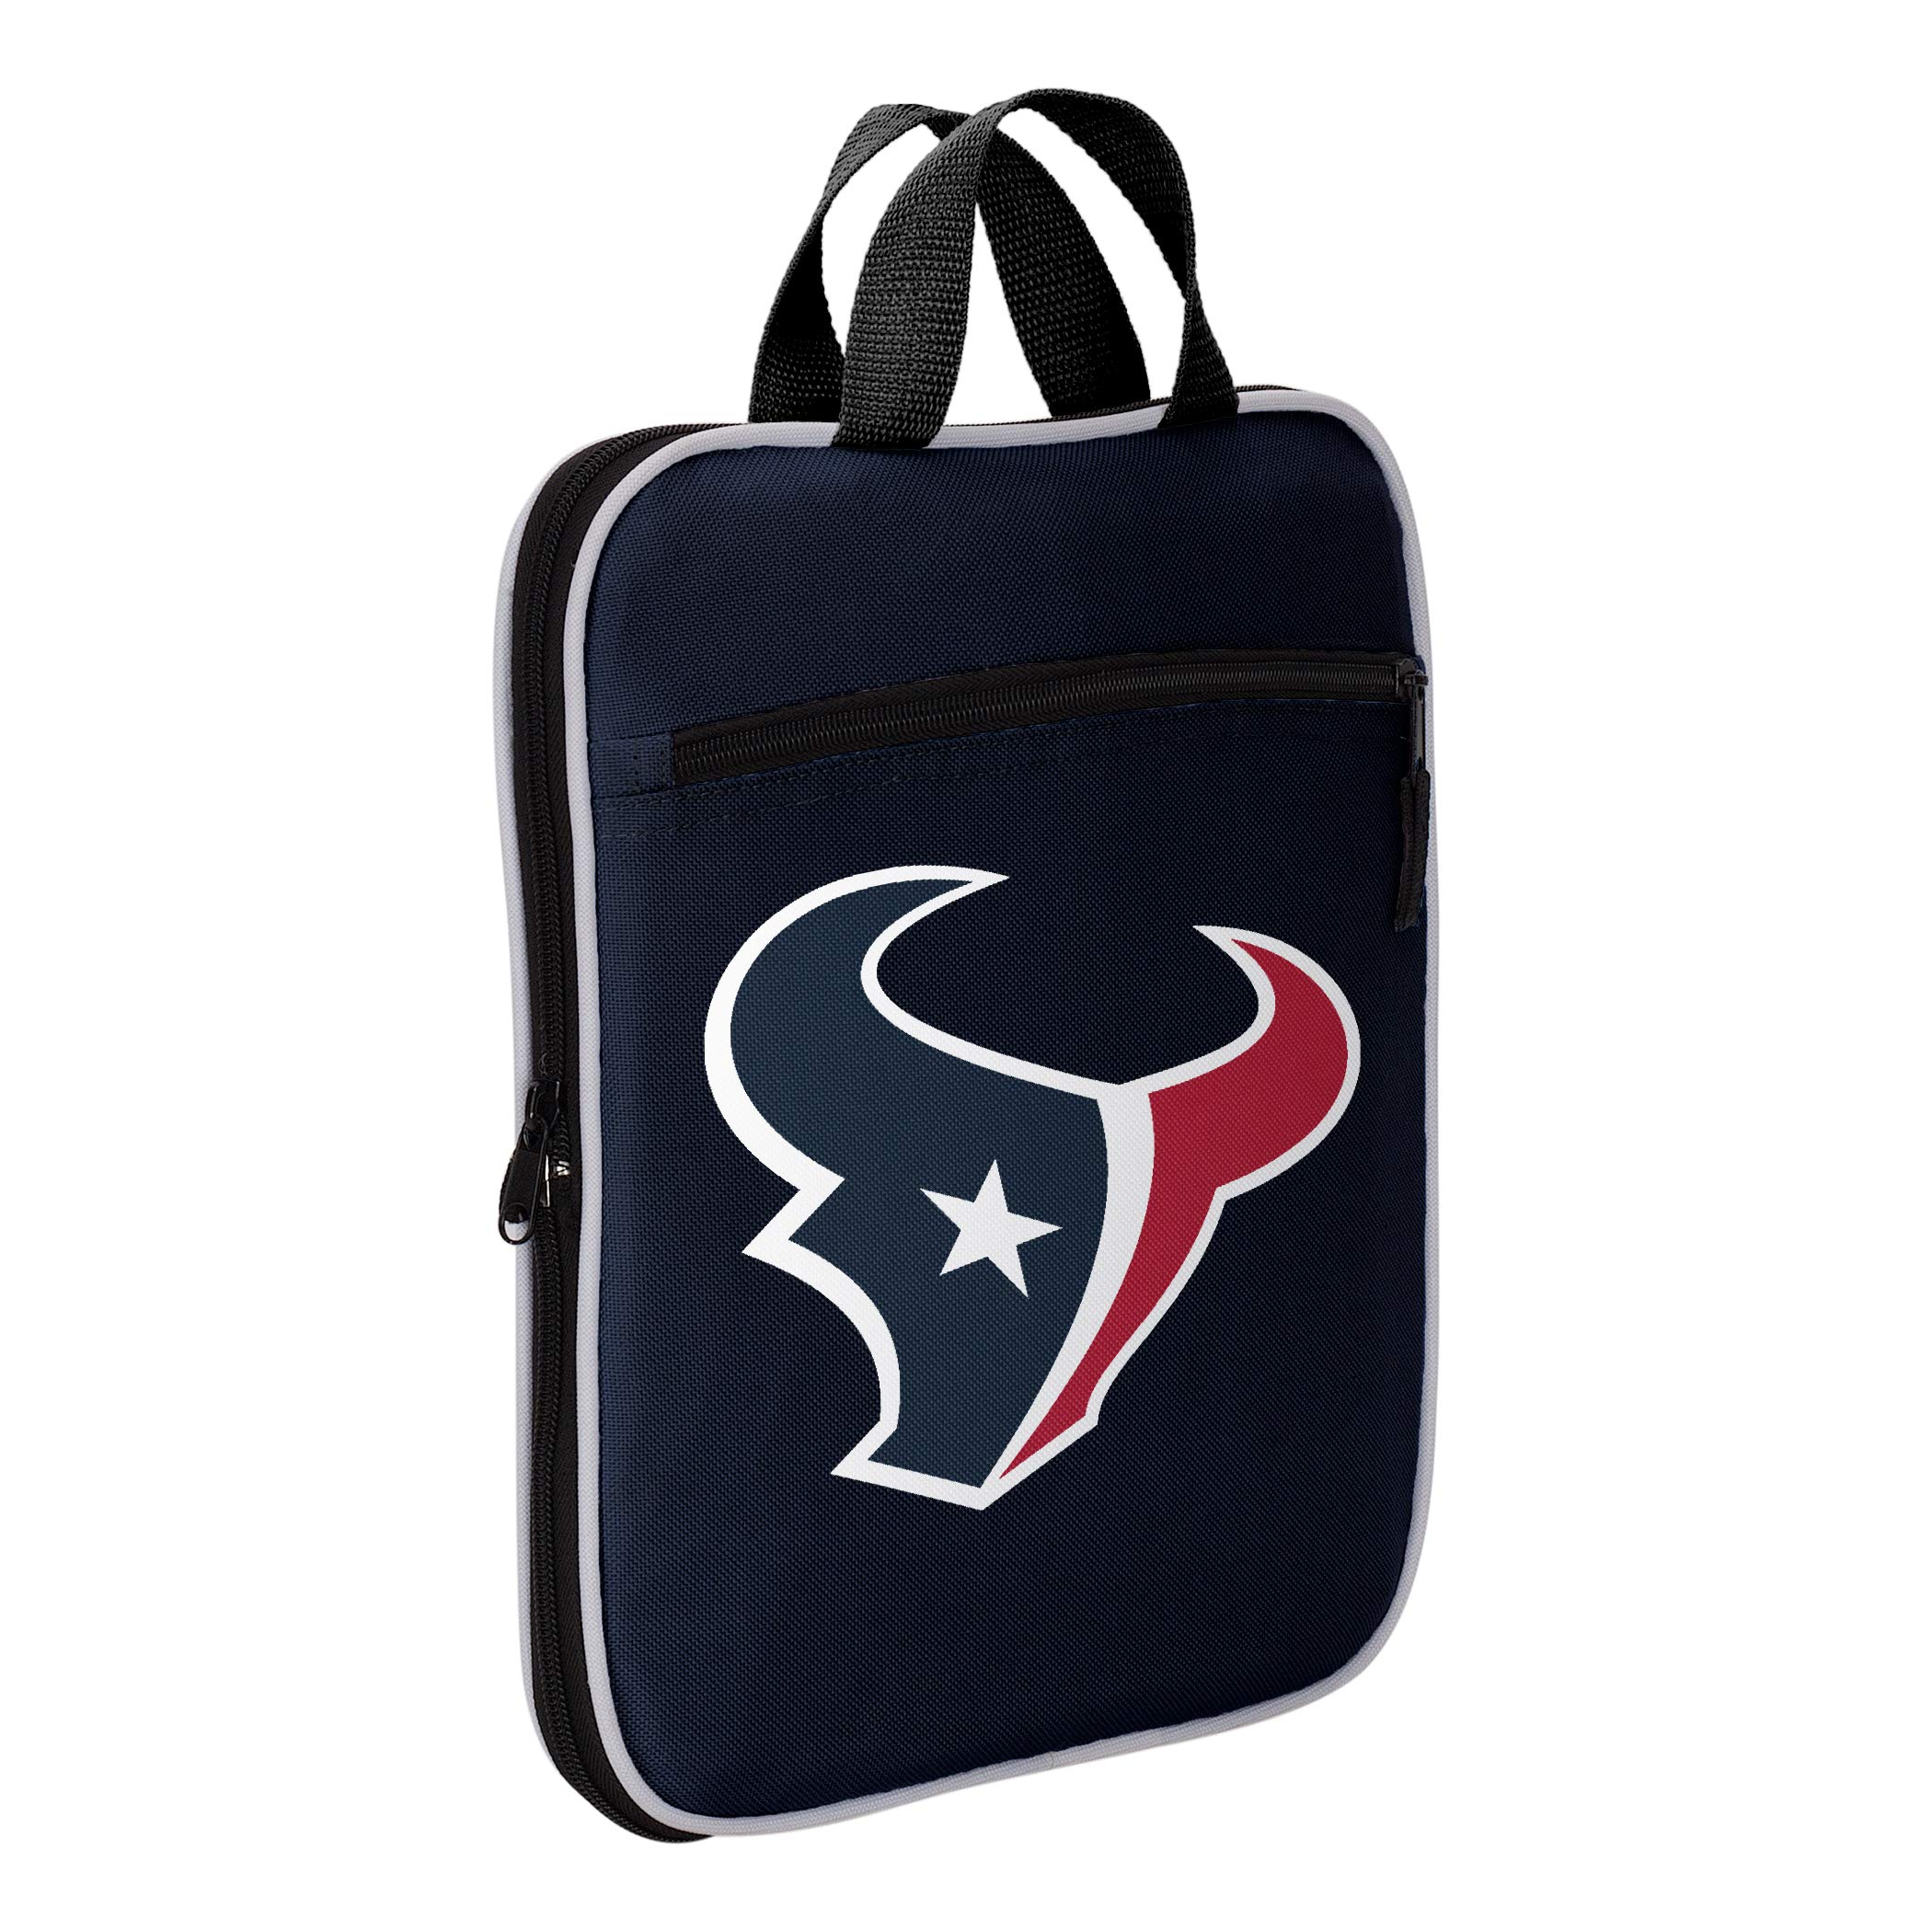 NFL Houston Texans NFL Steal Duffel, Navy, Measures 28'' in Length, 11'' in Width & 12'' in Height by The Northwest Company (Image #4)